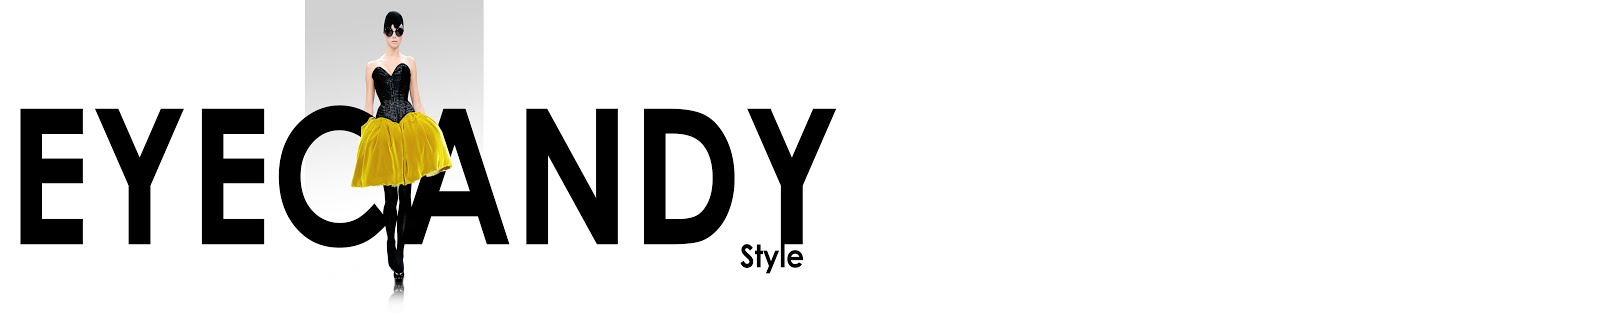 EYECANDYSTYLE 